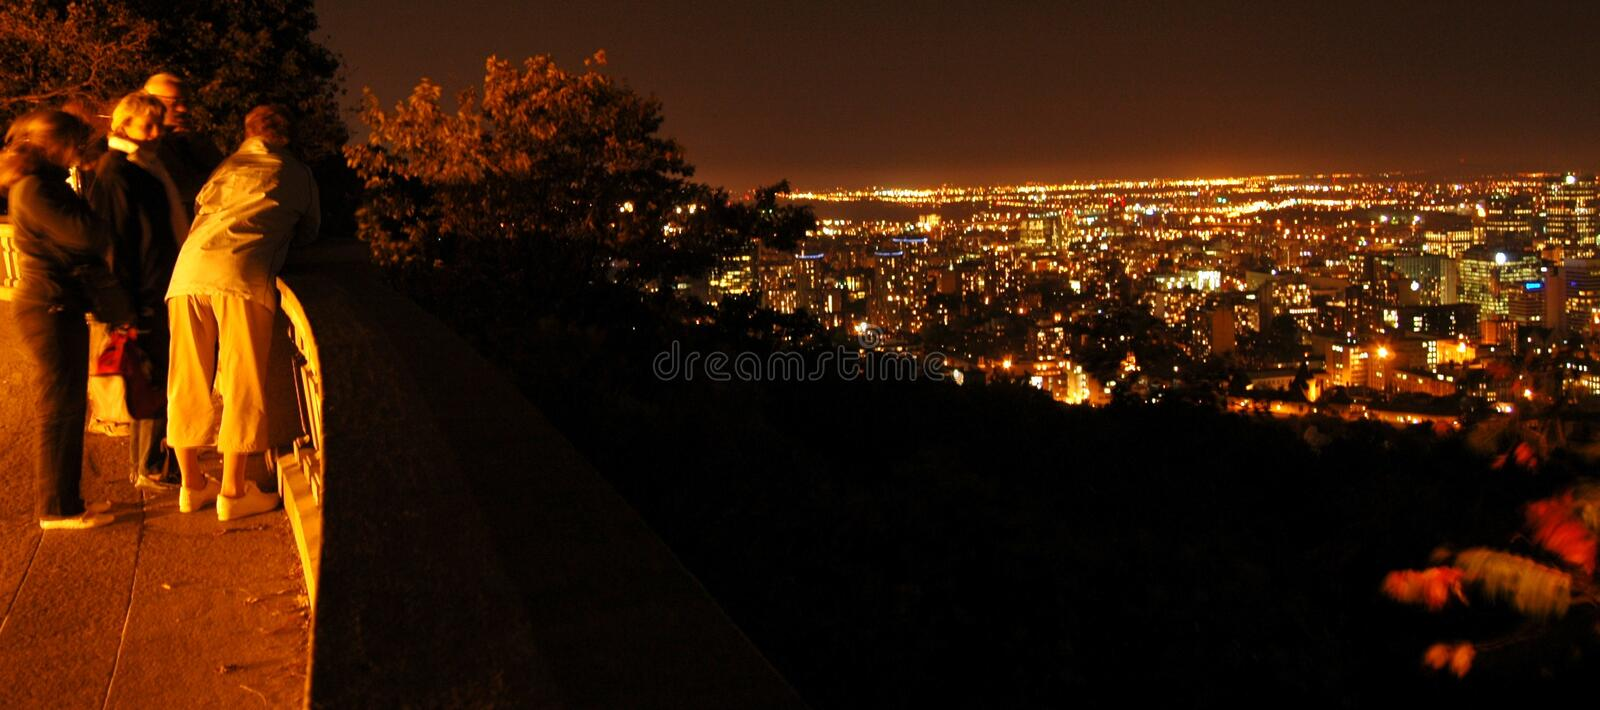 Montreal at night royalty free stock photos